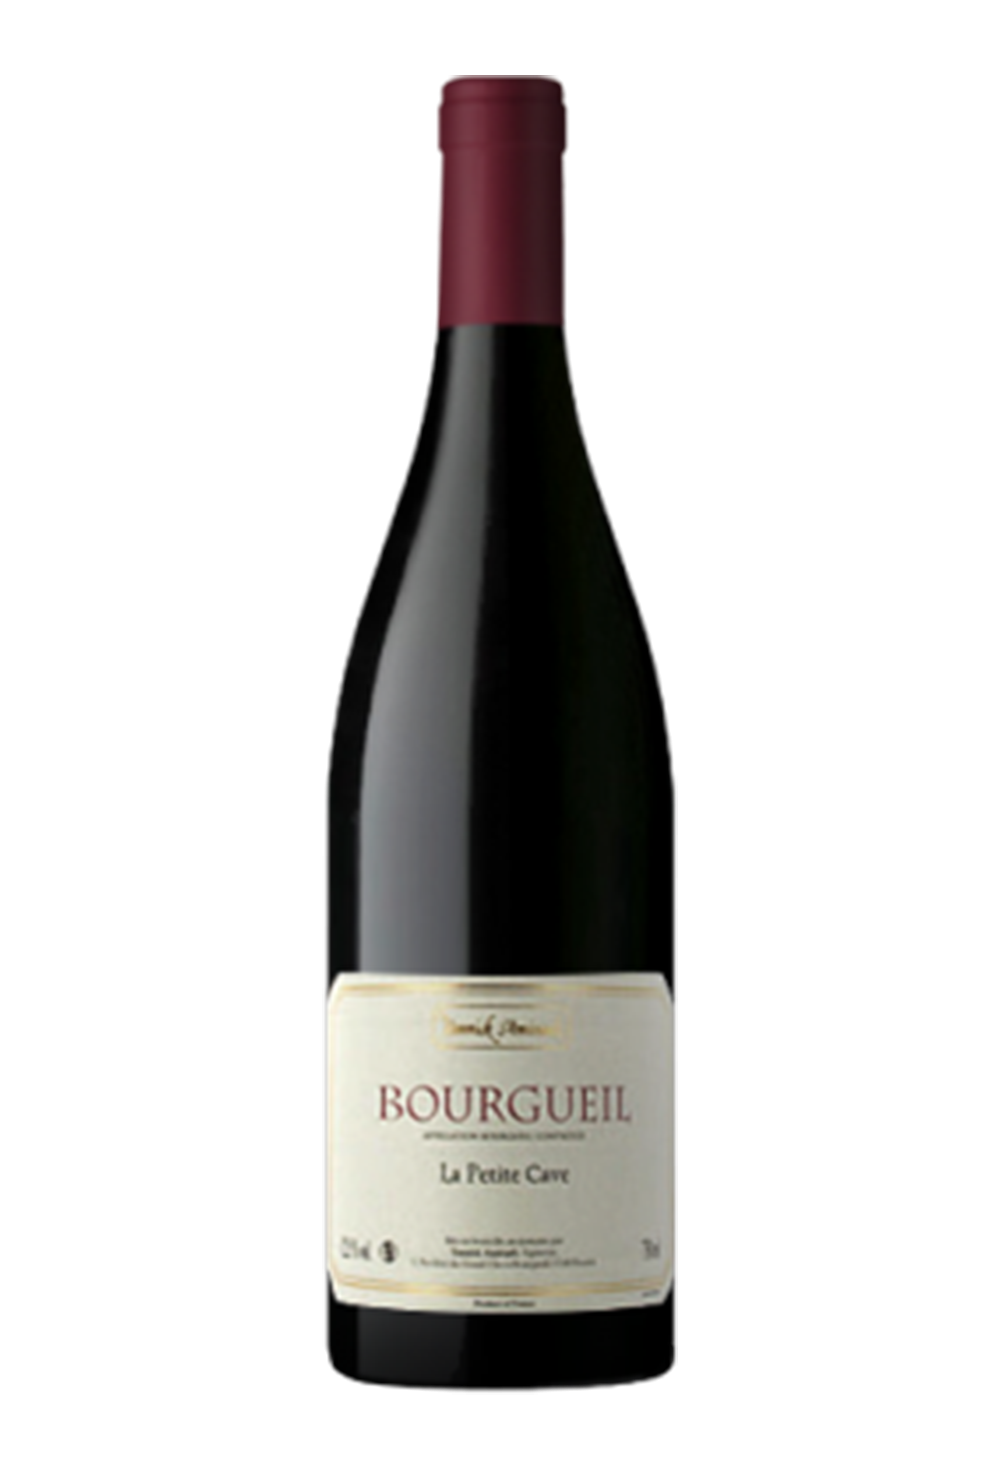 vin de loire bourgueil la petite cave rouge mill sime 2015 du domaine yannick amirault. Black Bedroom Furniture Sets. Home Design Ideas